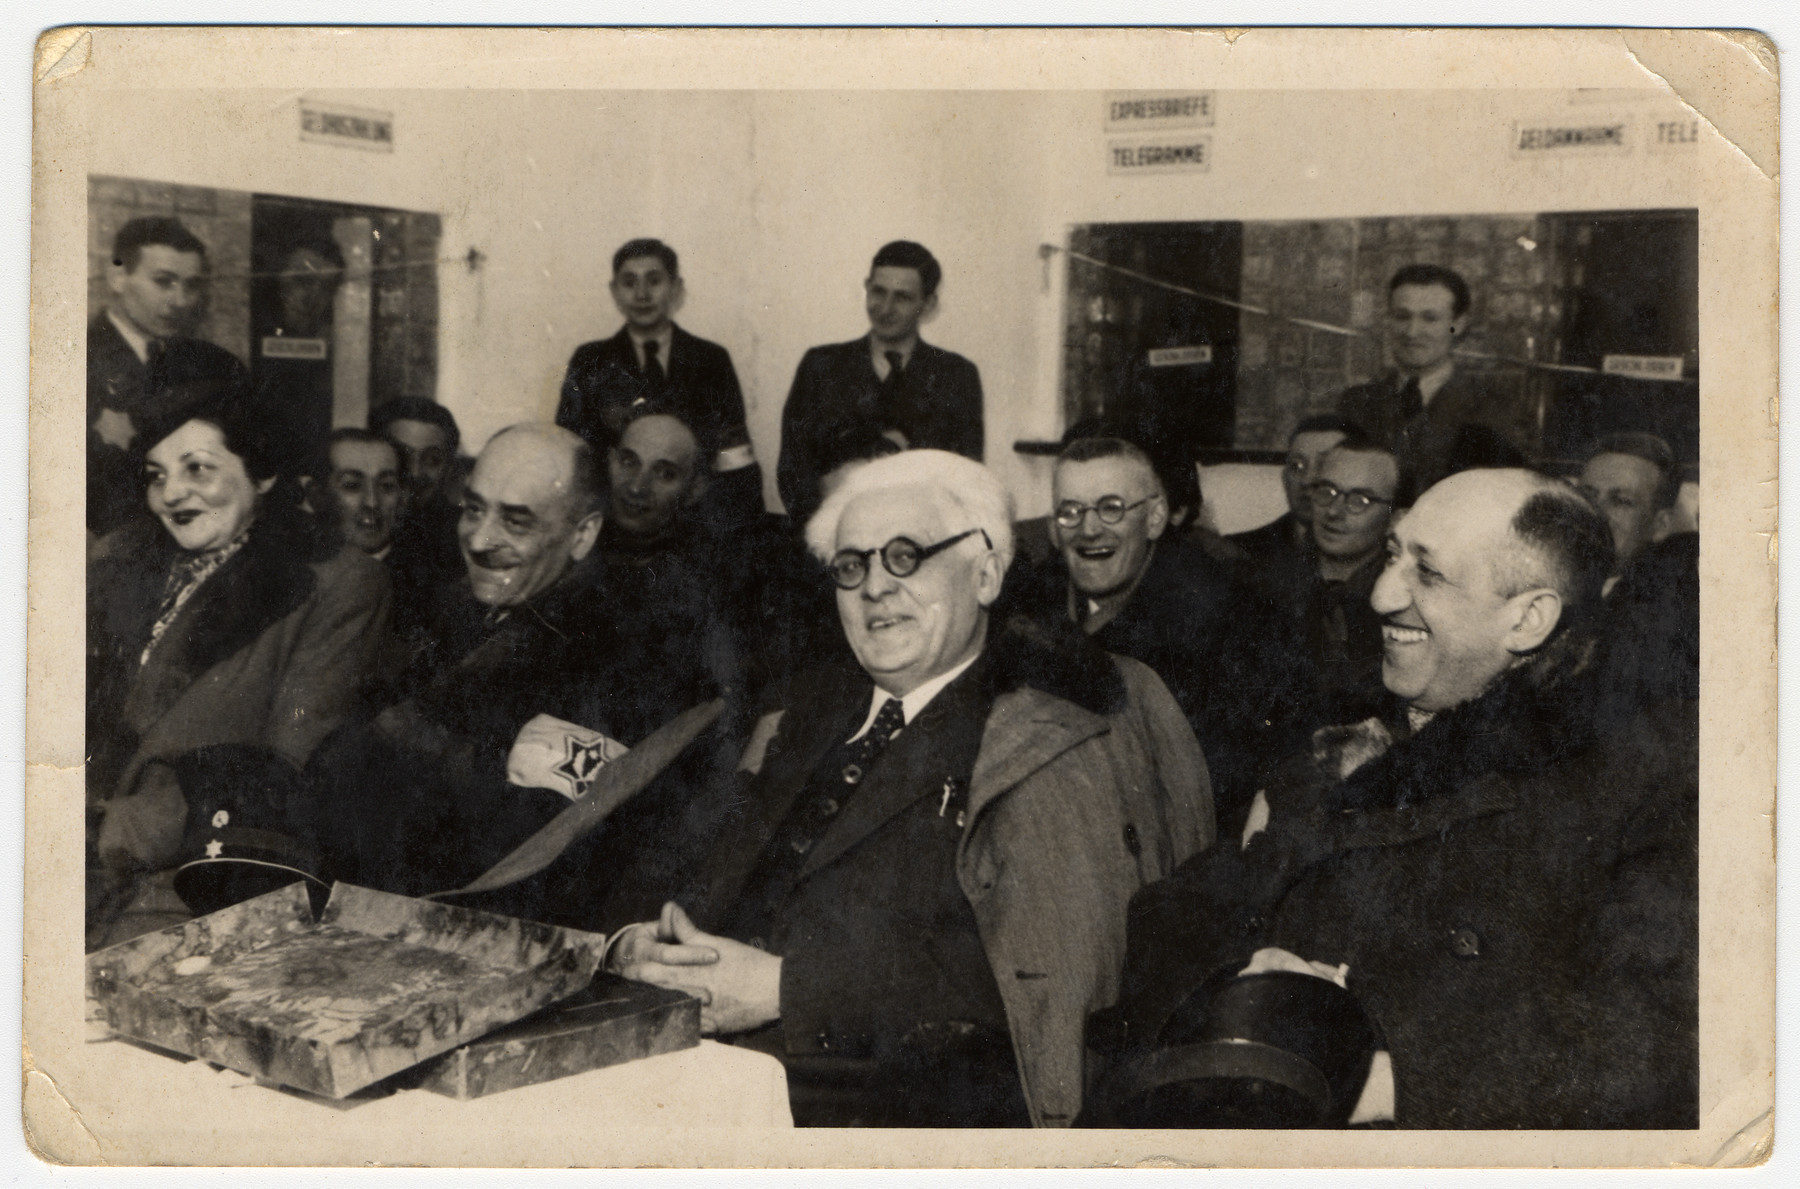 Jewish council chairman Mordechai Chaim Rumkowski (center), views a presentation album at a ceremony in the Lodz ghetto.    Pictured in front from right to left are: Dr. Leon Szykier; Mordechai Chaim Rumkowski, Leon Rozenblat and Helena Rumkowska.